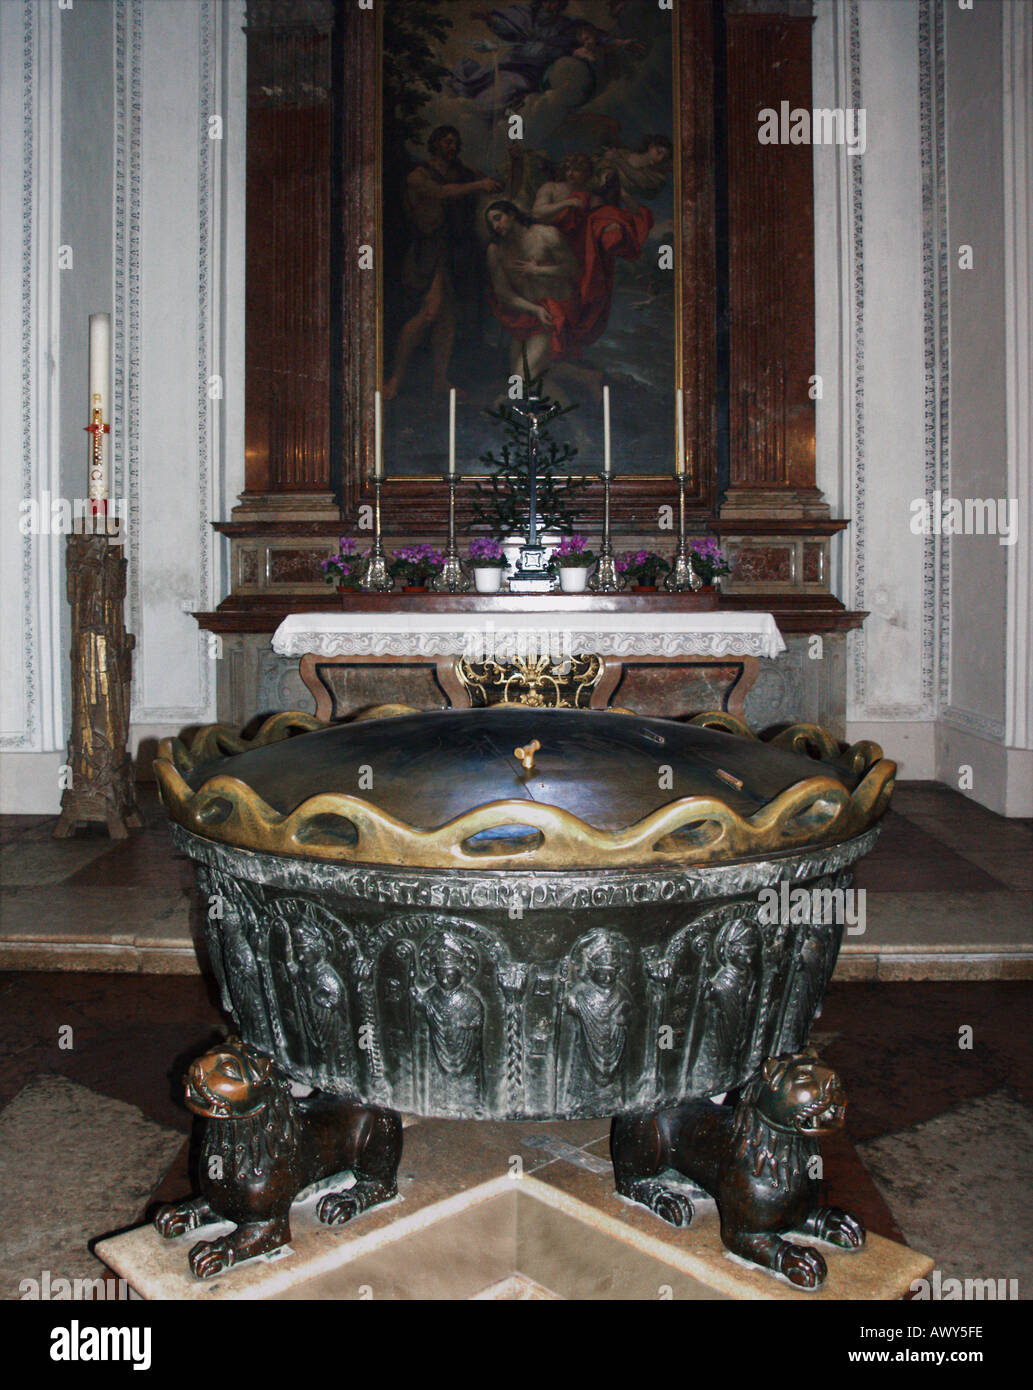 The baptismal font in which Mozart was baptised in Salzburg cathedral, Austria Stock Photo